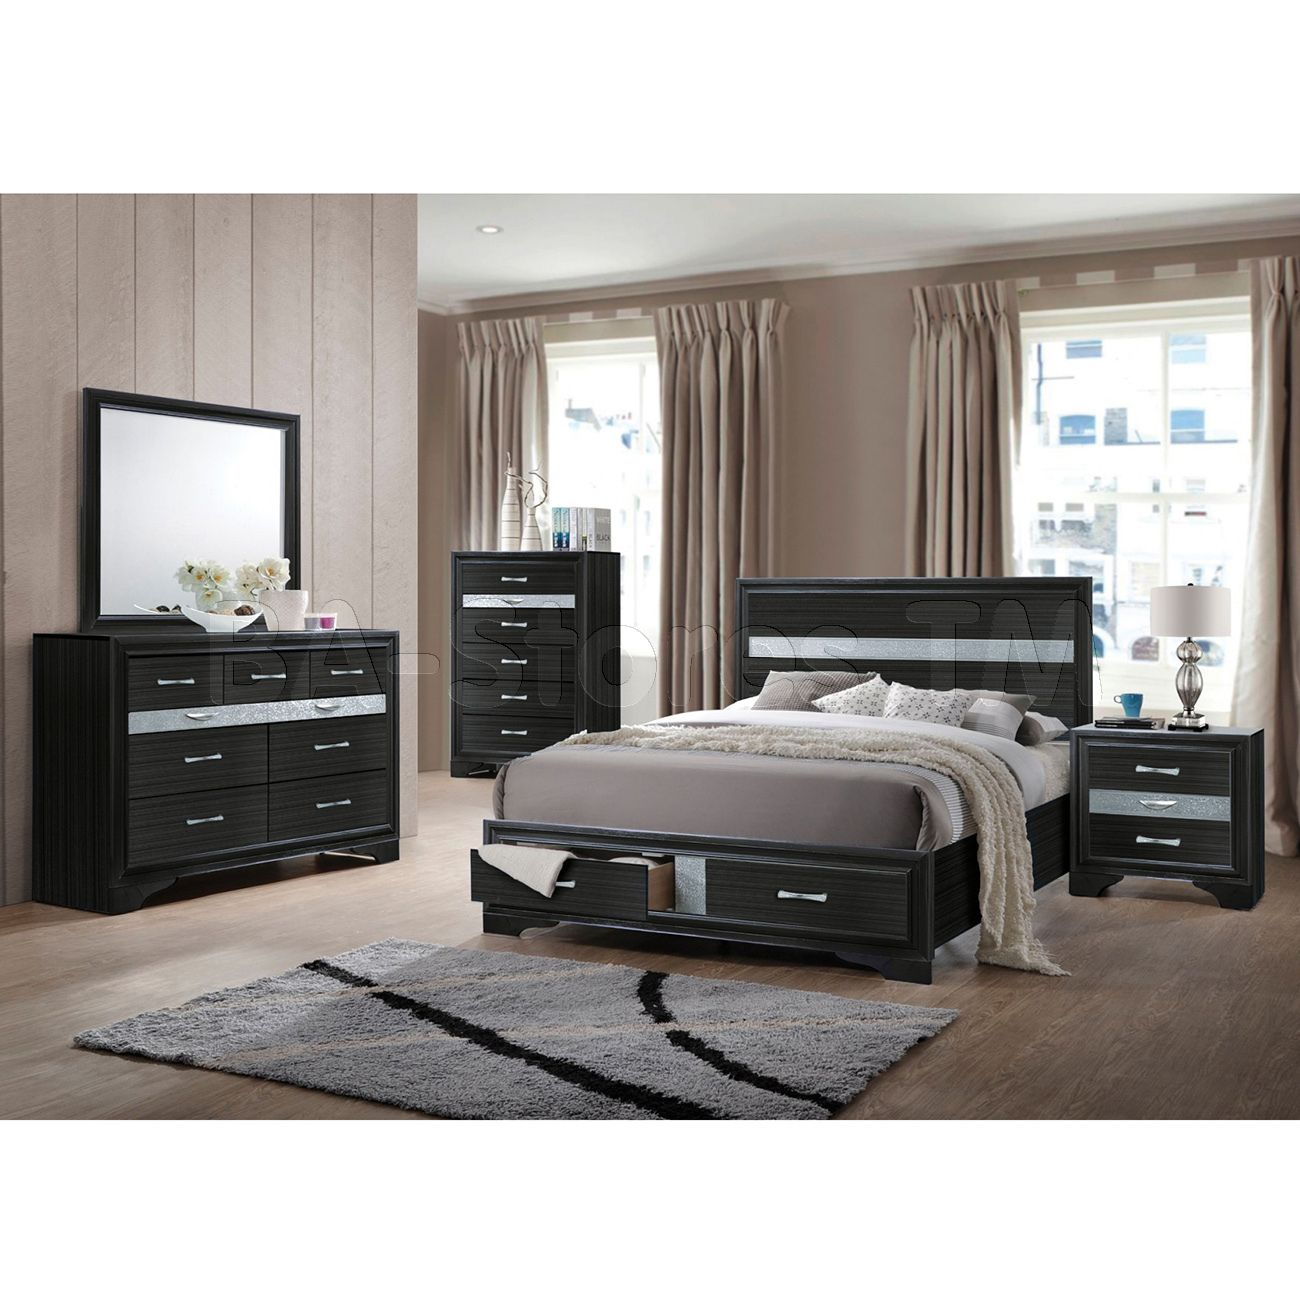 Best Naima Bedroom Set In Black By Acme Furniture With Images 640 x 480